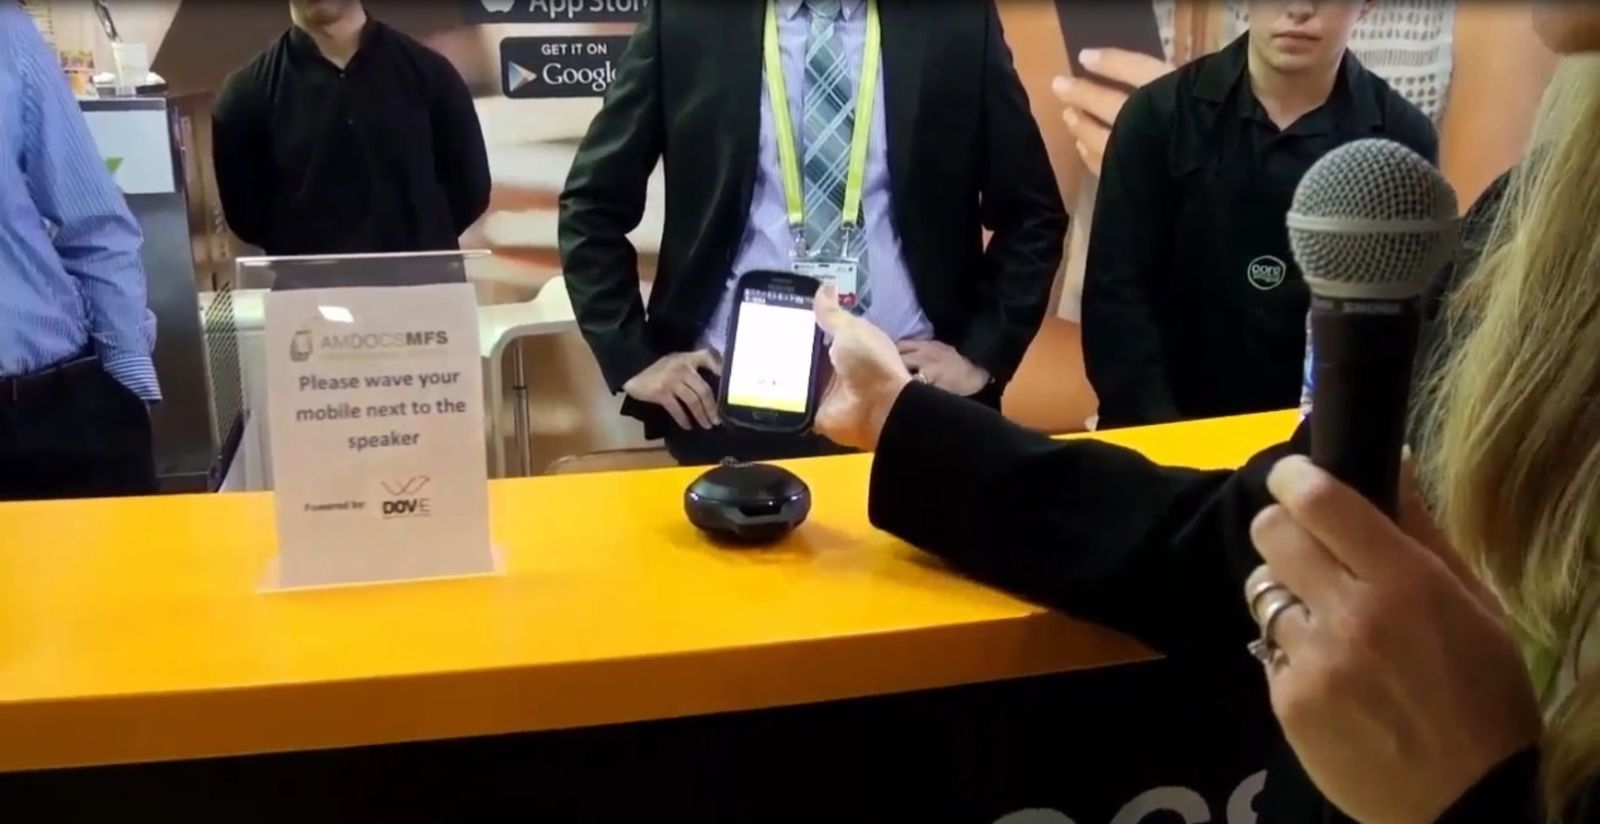 Using the Amdocs Mobile Wallet with DOV-E tech inside. Photo courtesy of DOV-E